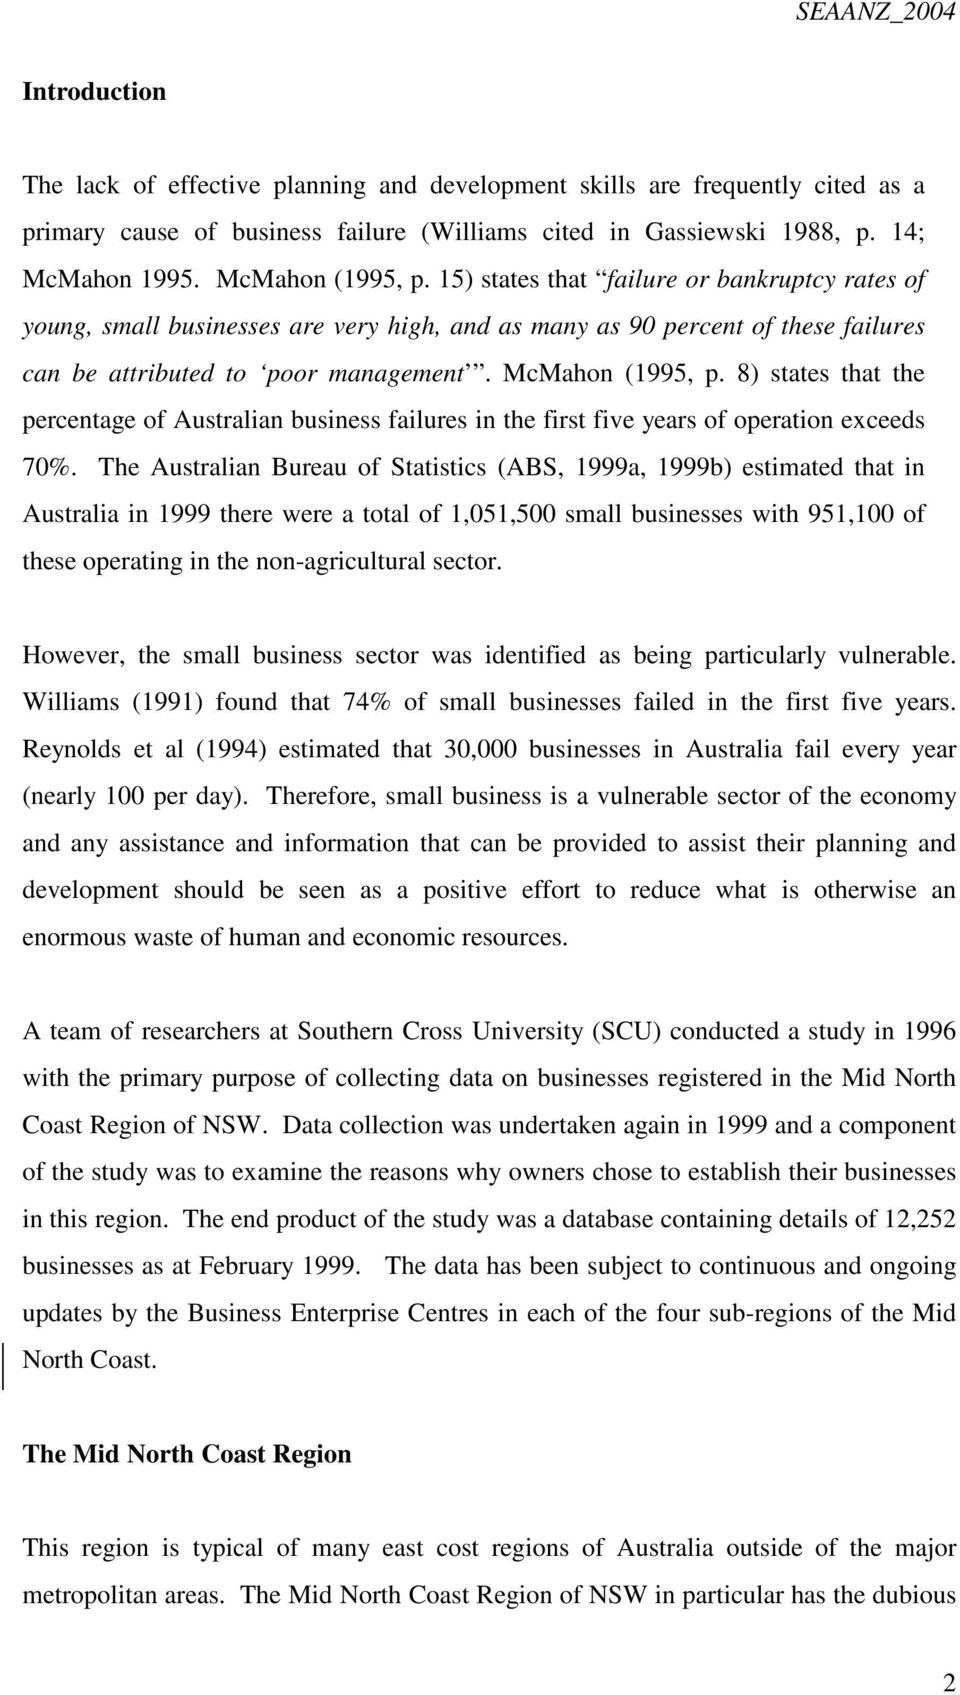 McMahon (1995, p. 8) states that the percentage of Australian business failures in the first five years of operation exceeds 70%.